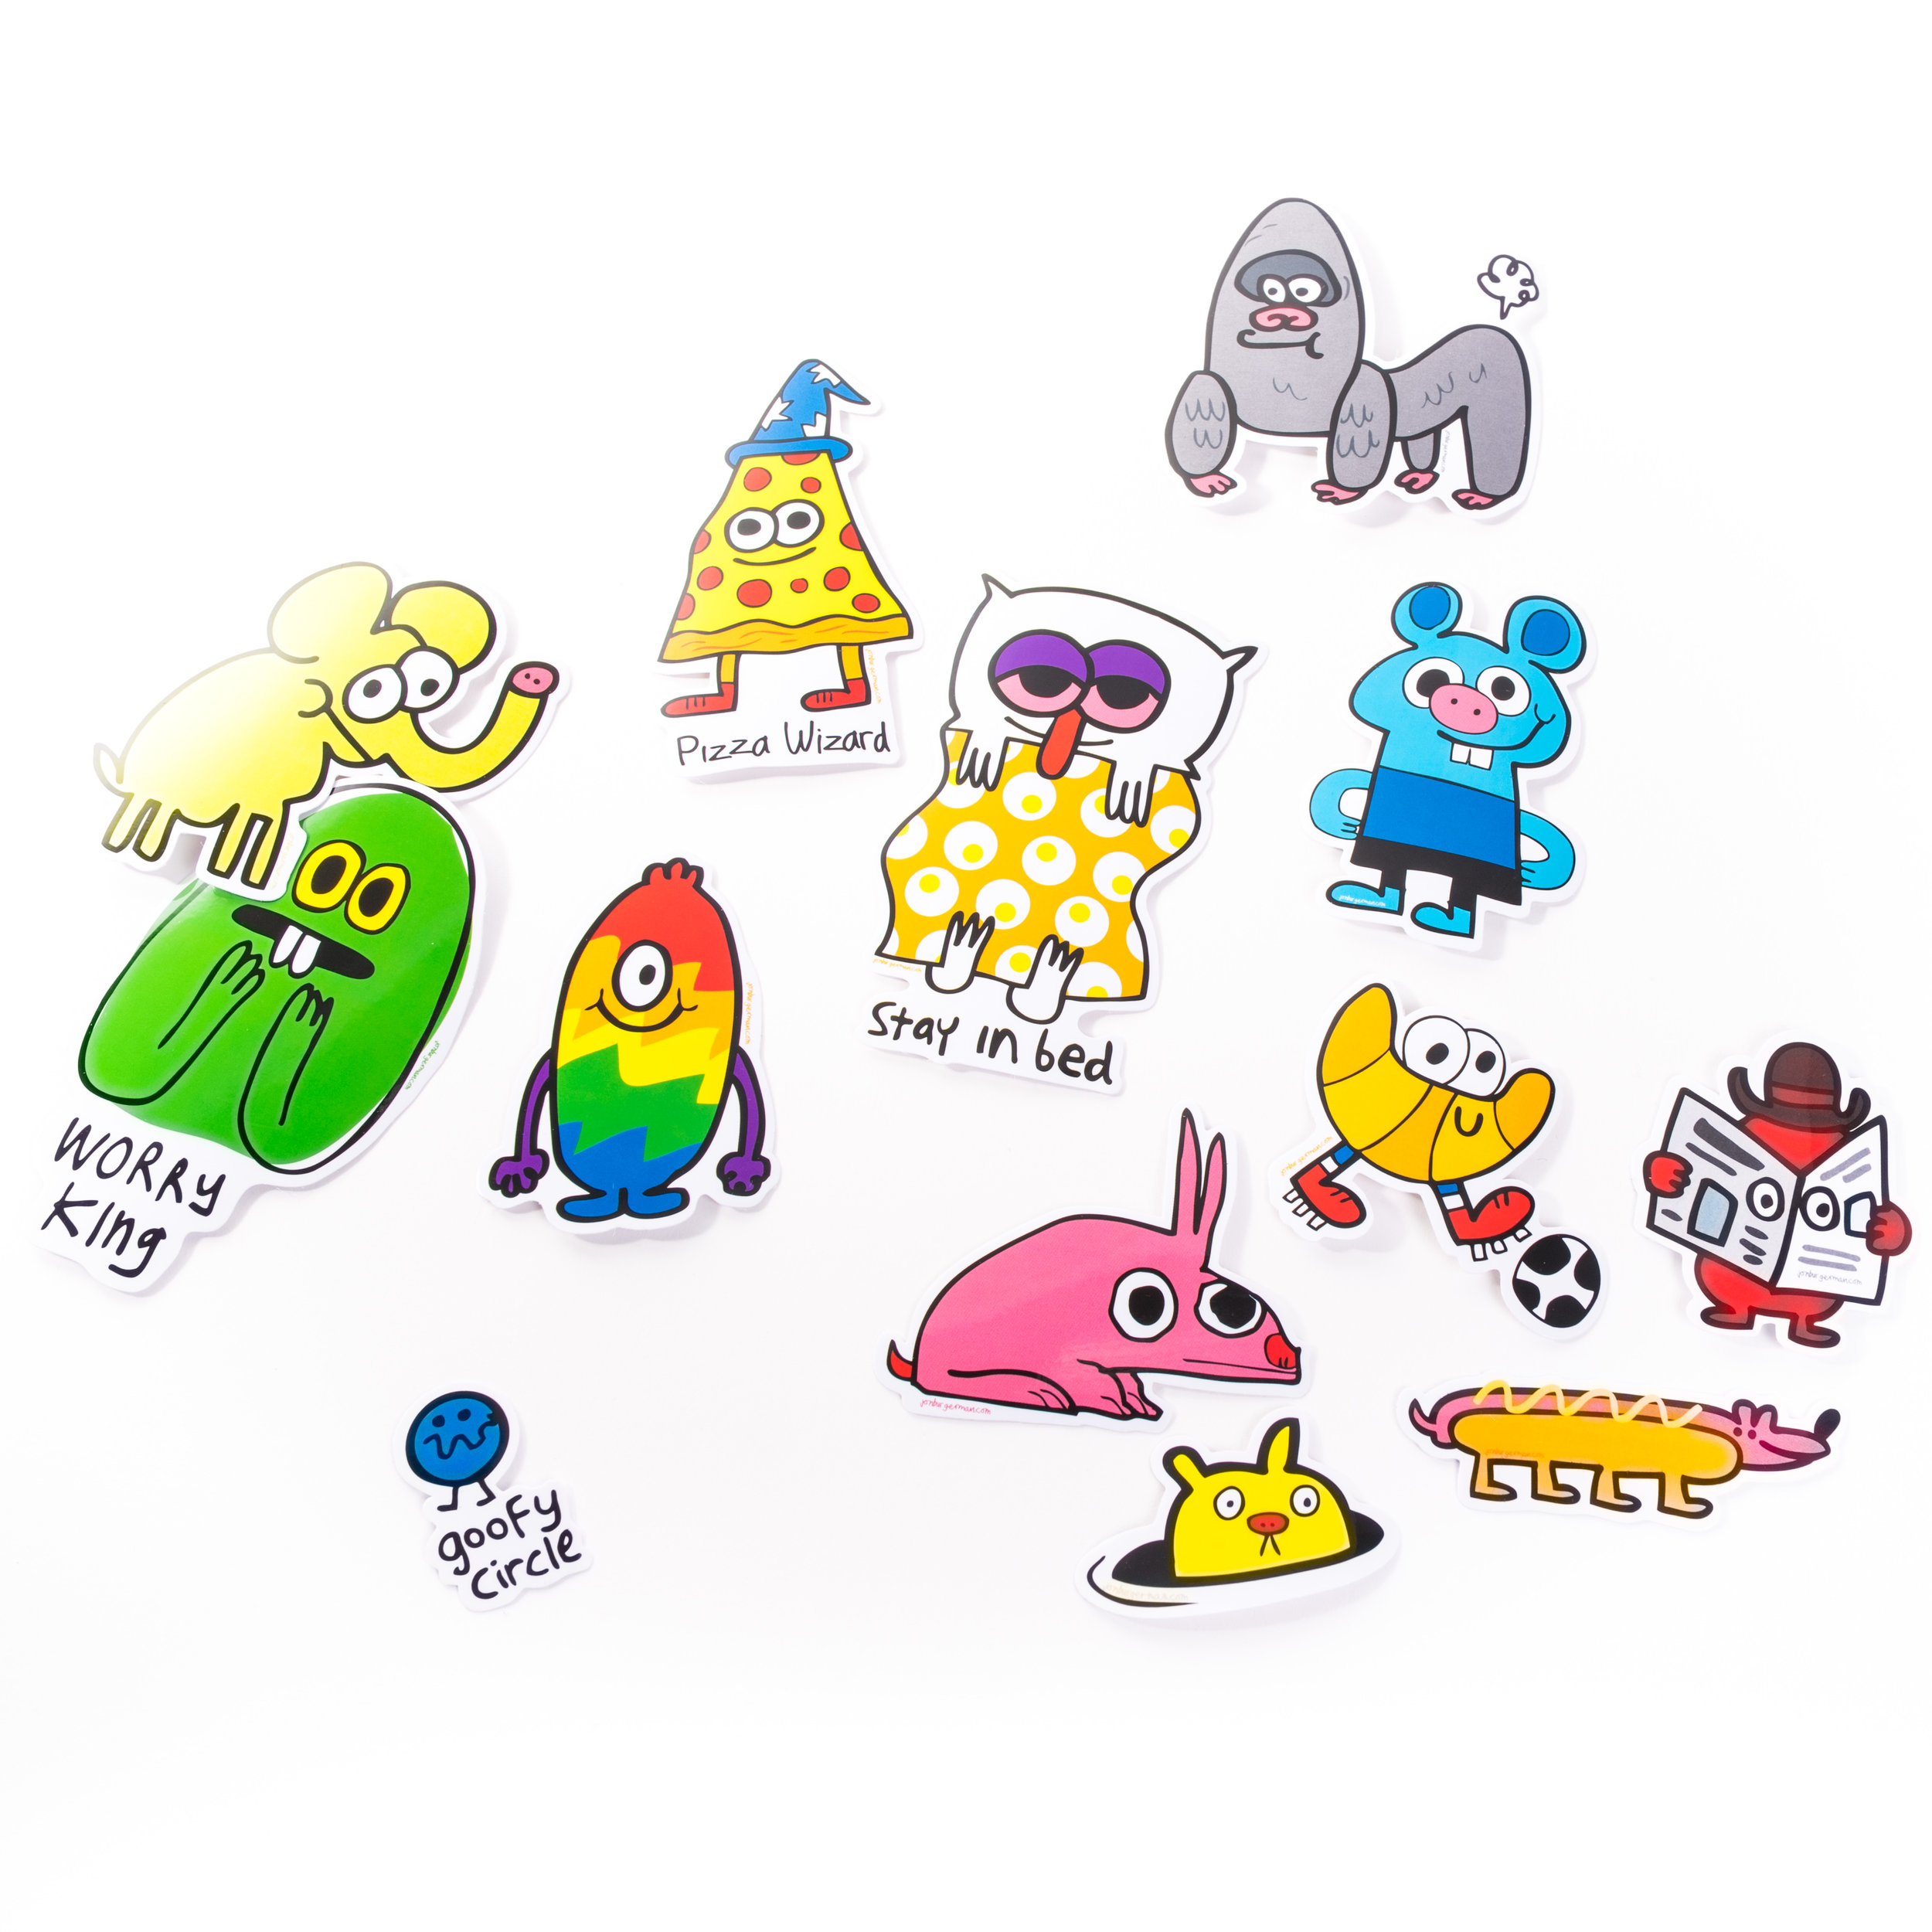 Jon Burgerman 2016 Sticker Collection